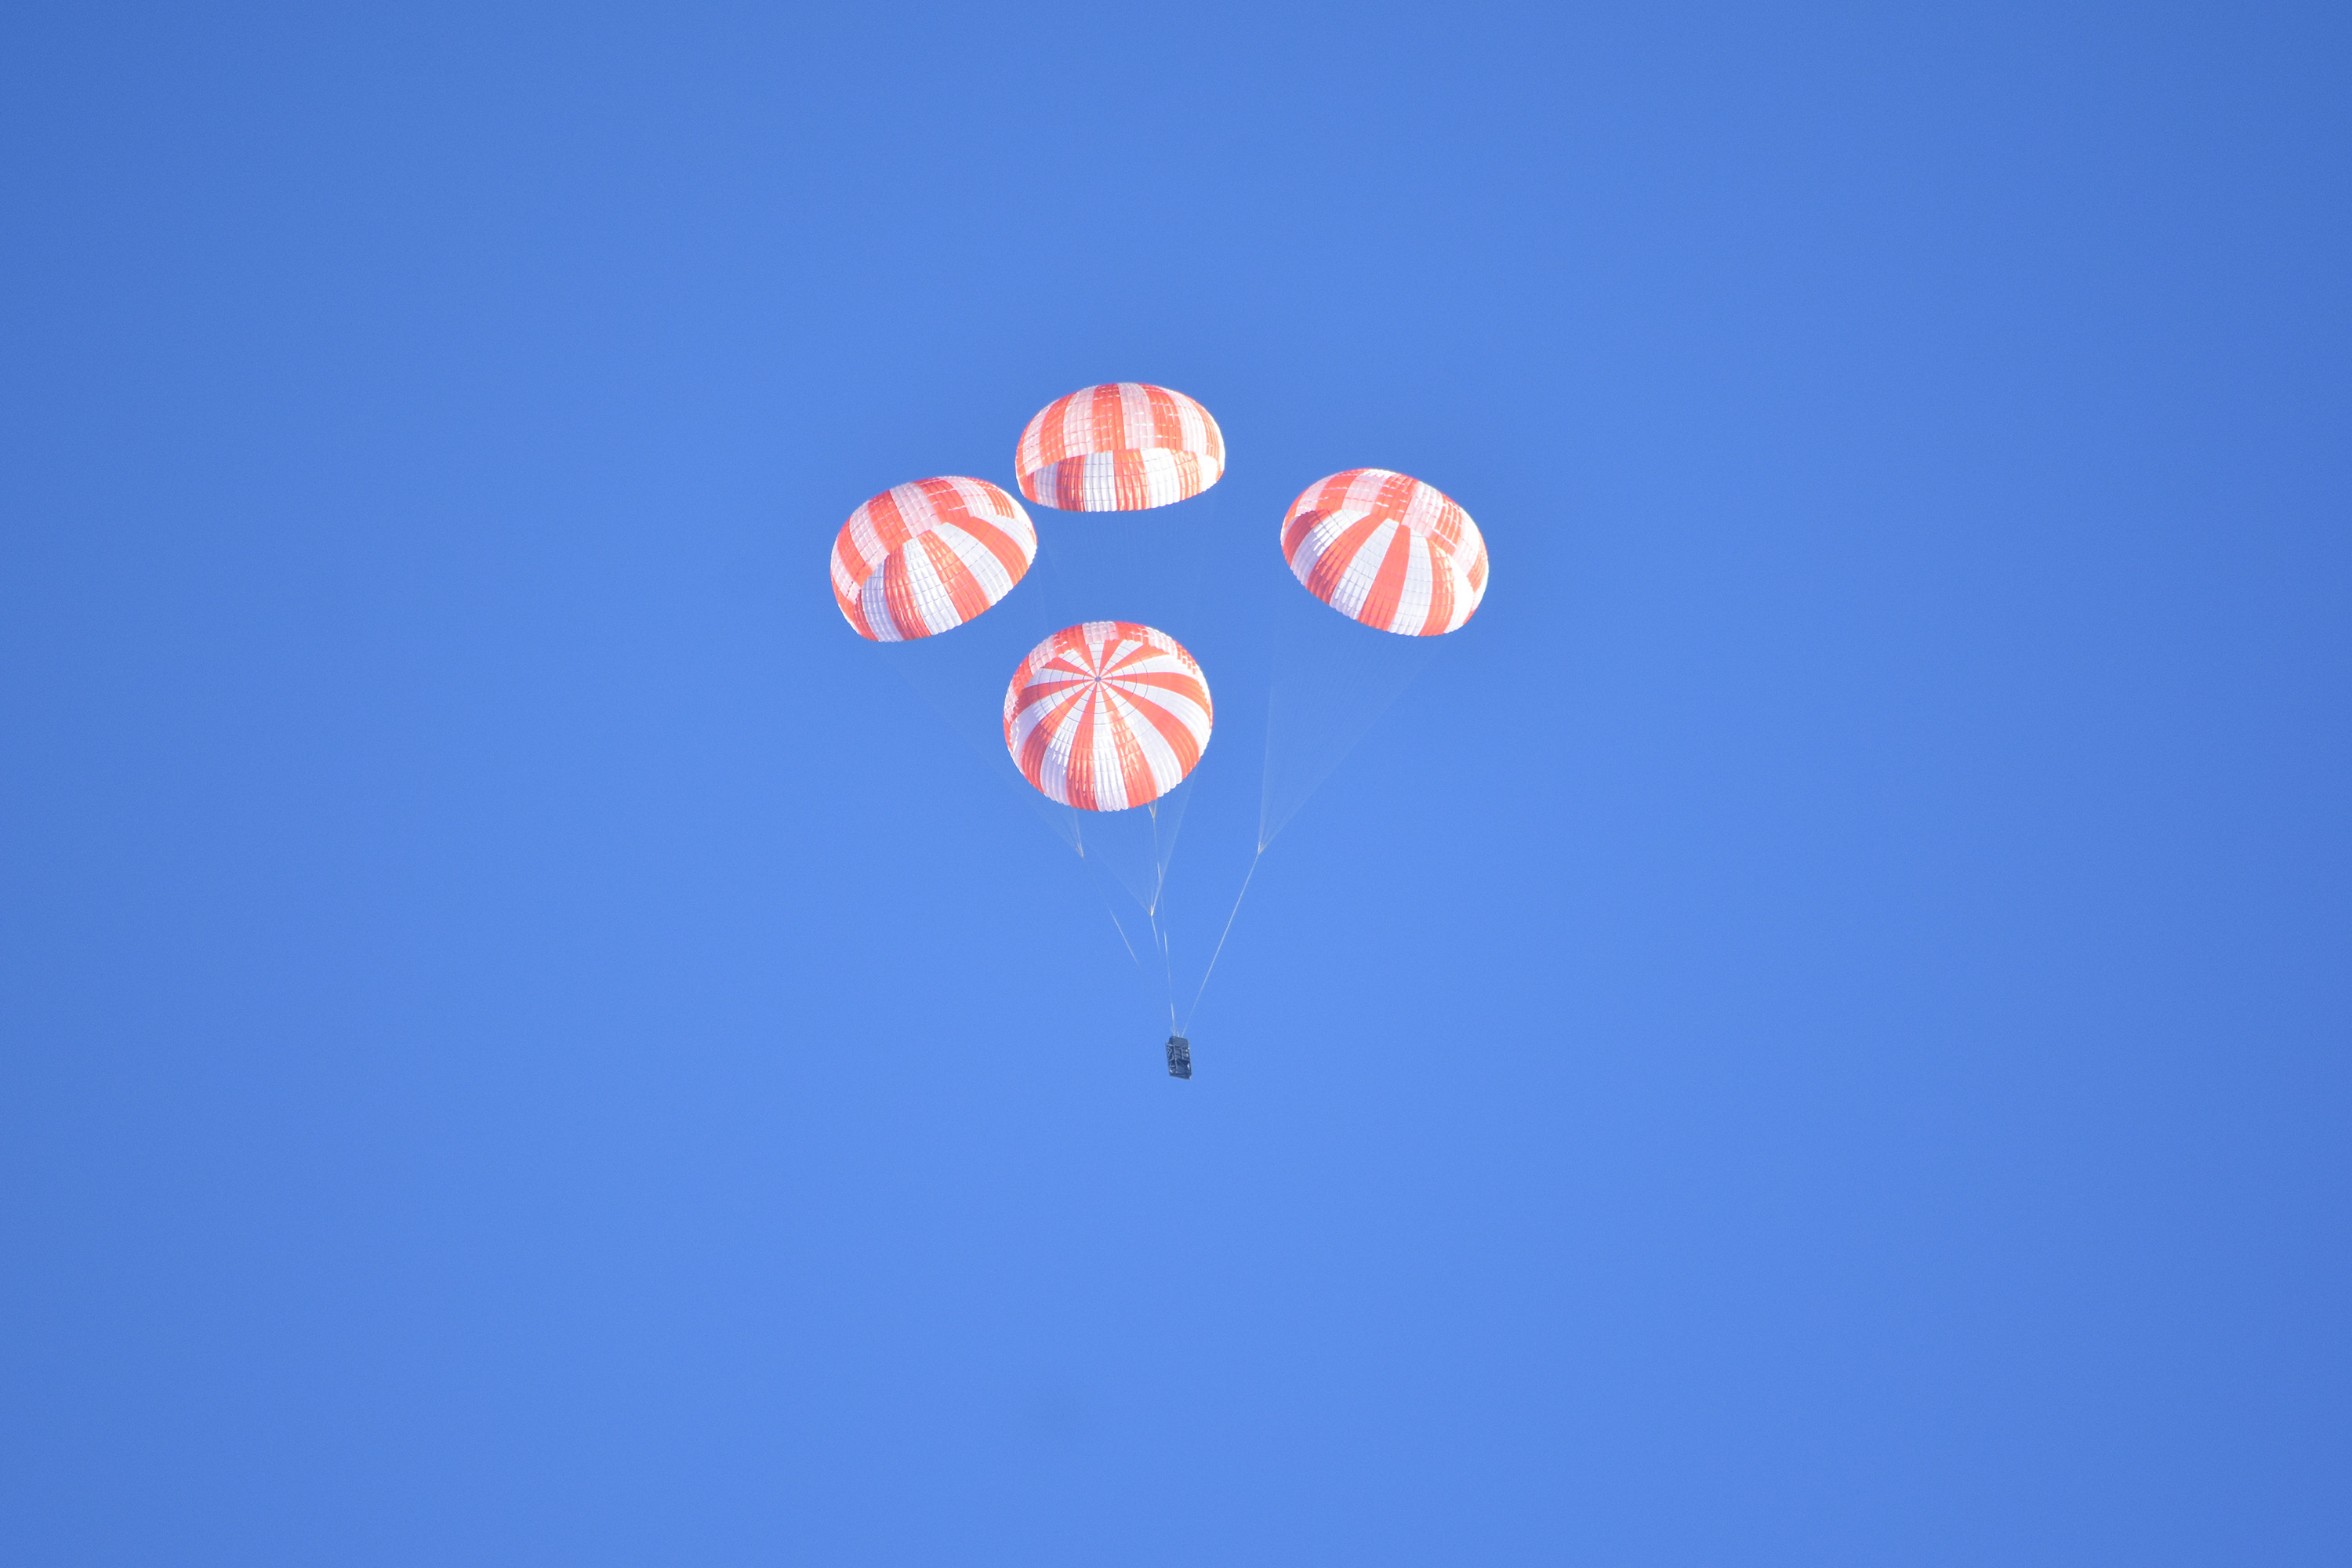 SpaceX Shares Thrilling Video of Crew Dragon Parachute Test